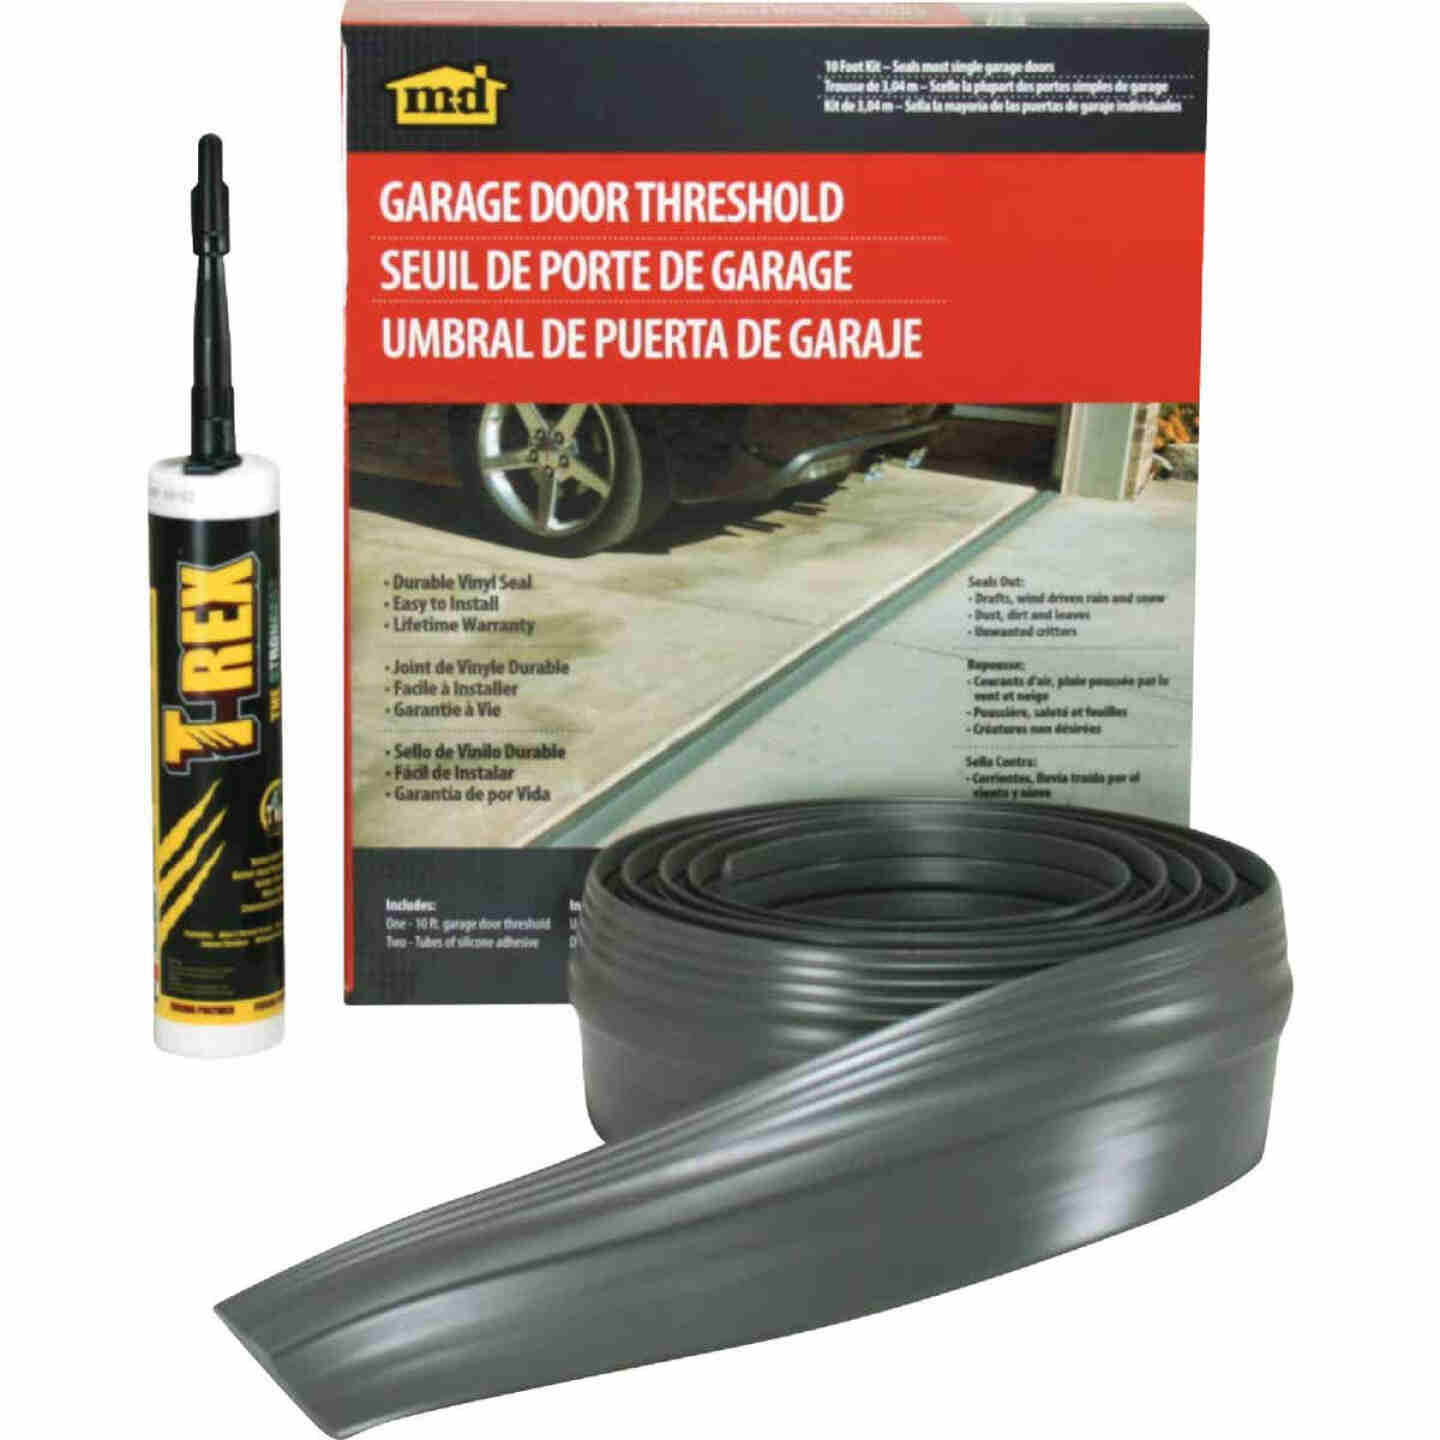 M-D 3-1/2 In. x 20 Ft. Gray Vinyl Threshold Garage Door Seal Kit Image 1